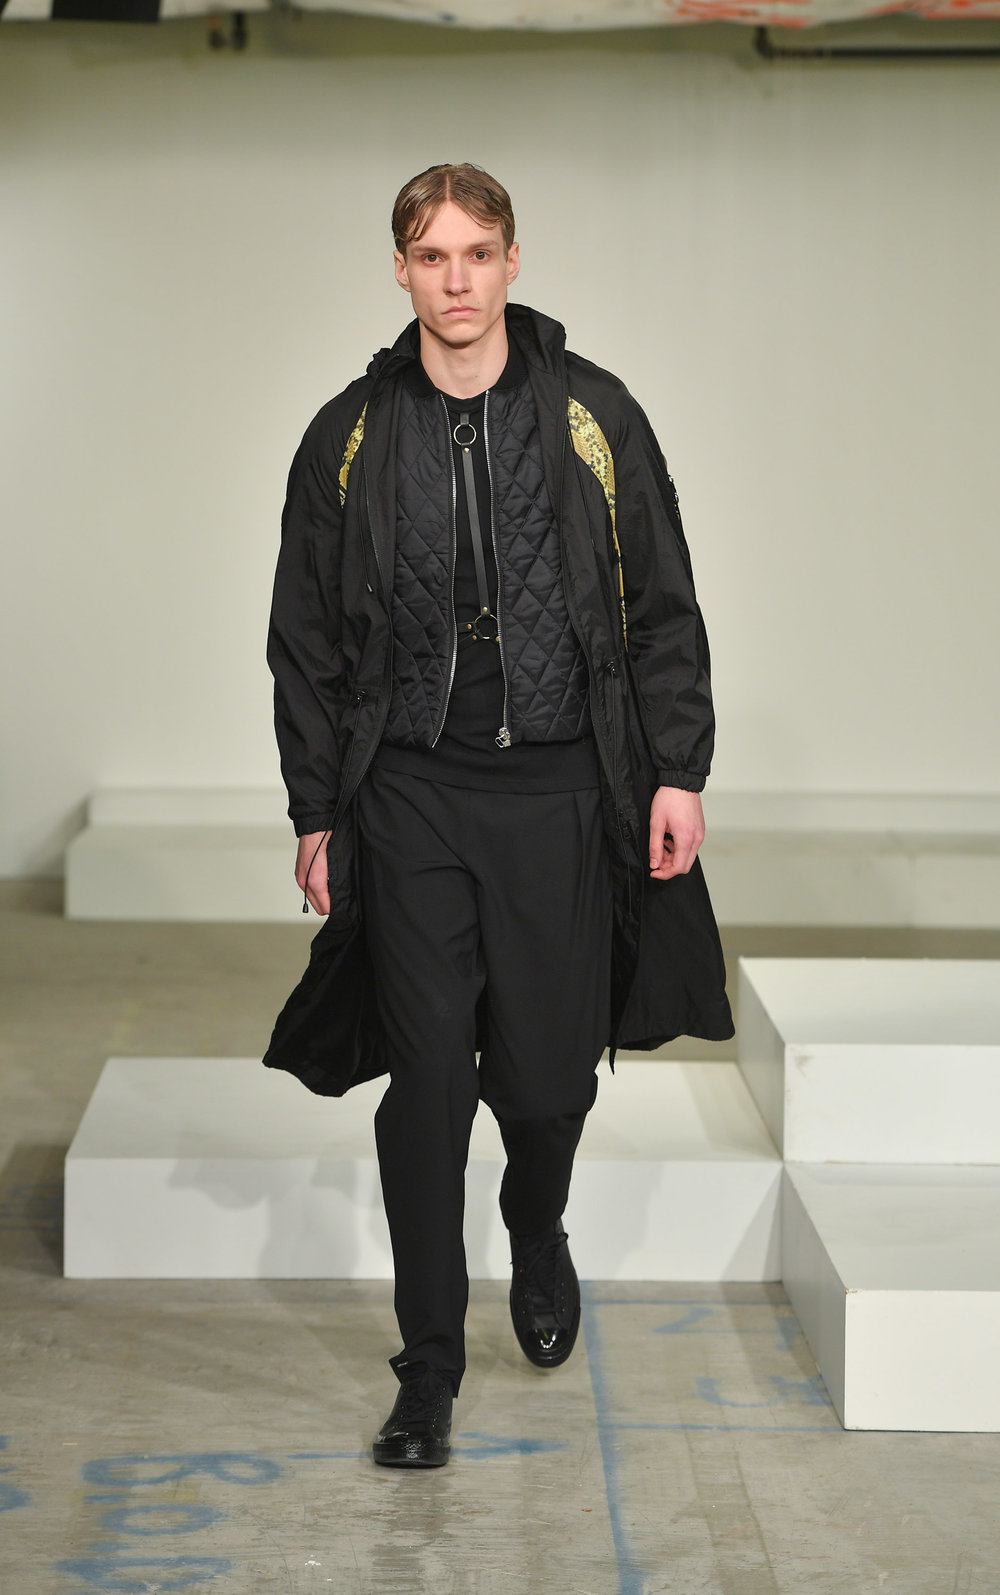 Toronto Fashion Week - Fall/Winter 2018 Collection